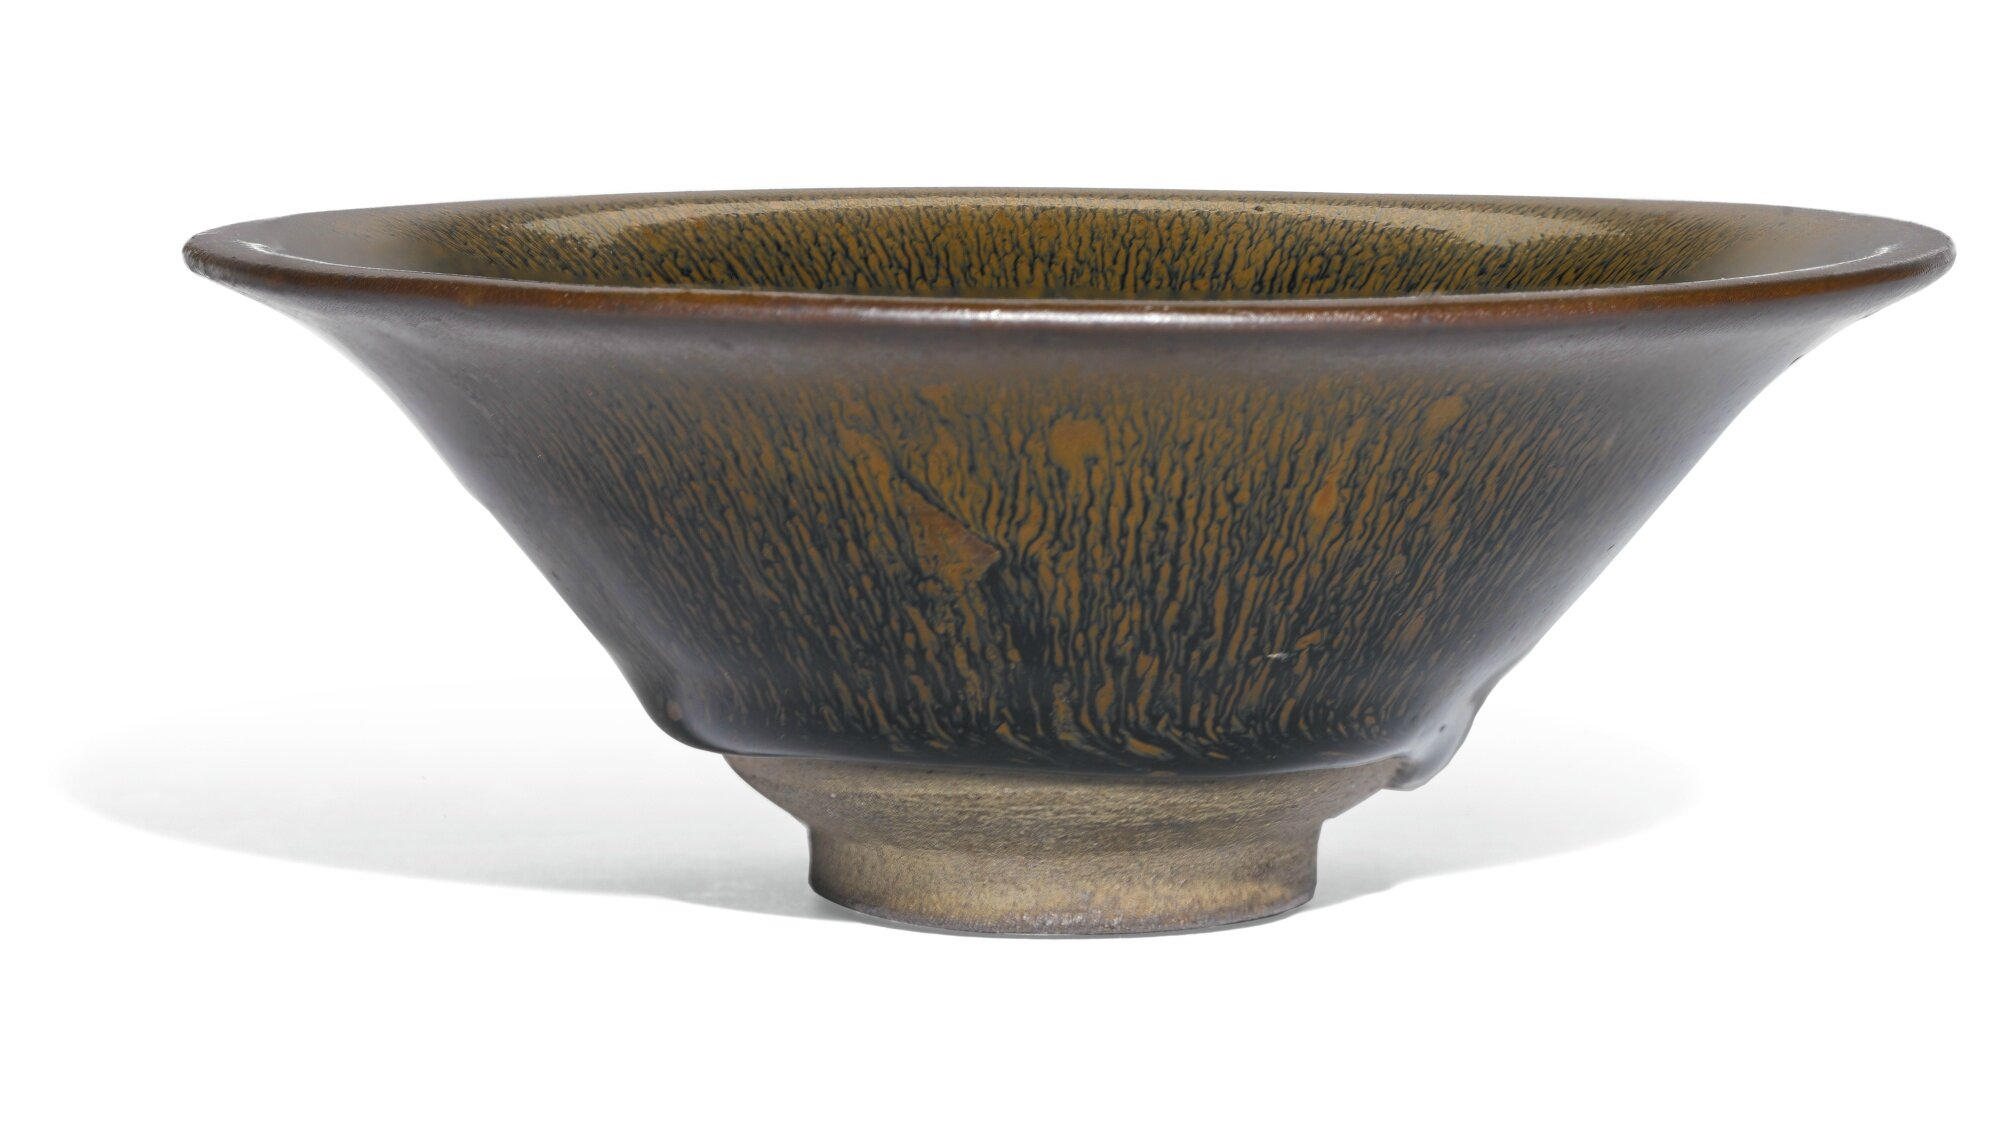 A 'Jian' 'hare's fur' bowl, Song dynasty